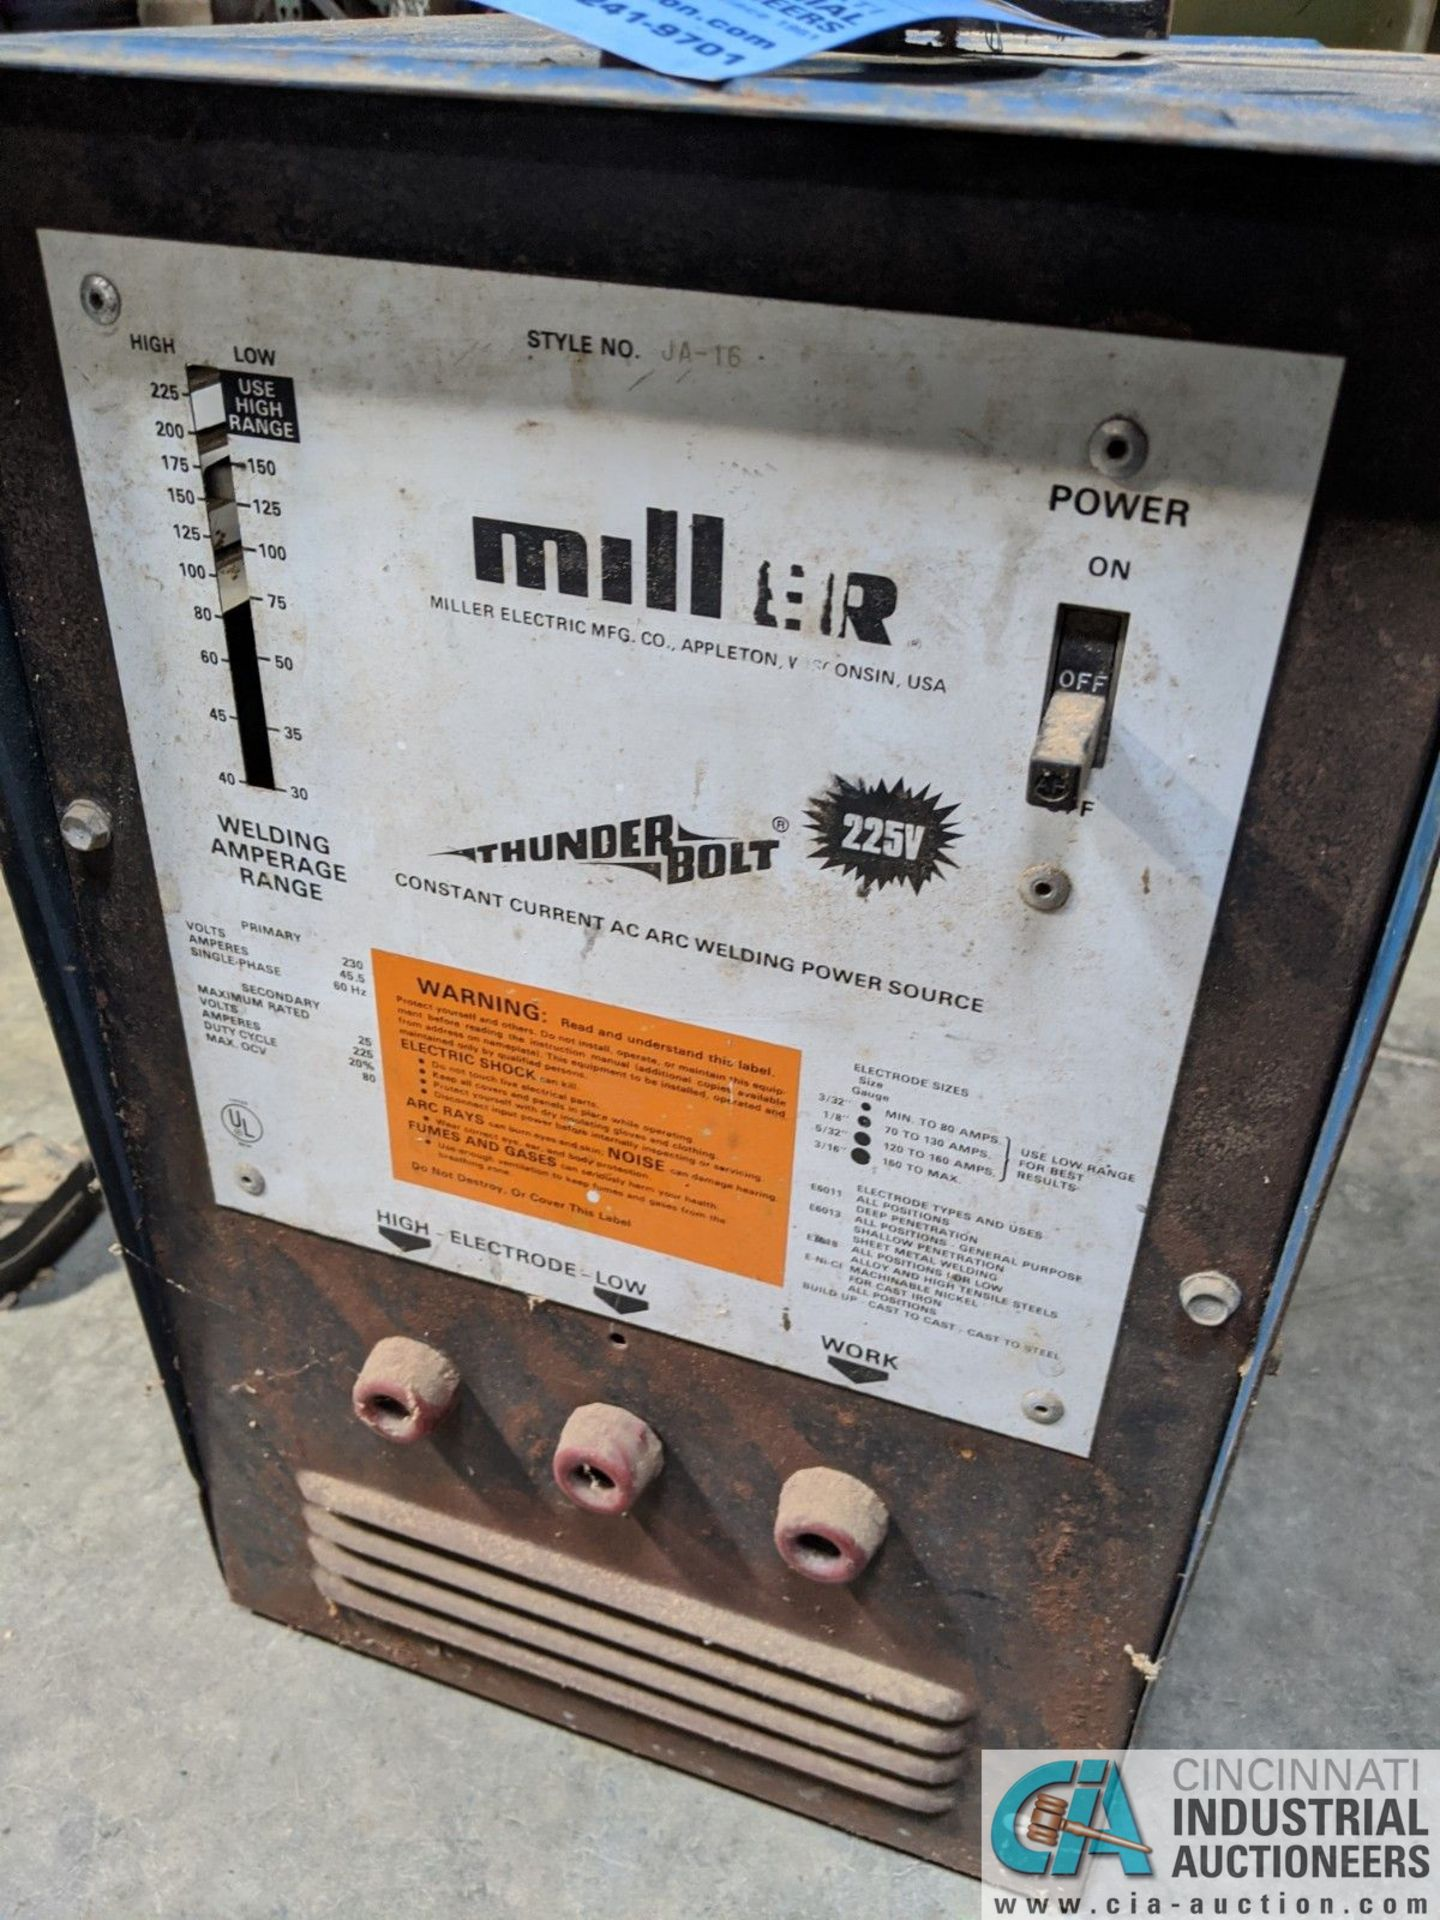 45 AMP MILLER THUNDERBOLT WELD POWER SOURCE (8635 East Ave., Mentor, OH 44060 - John Magnasum: 440- - Image 2 of 3